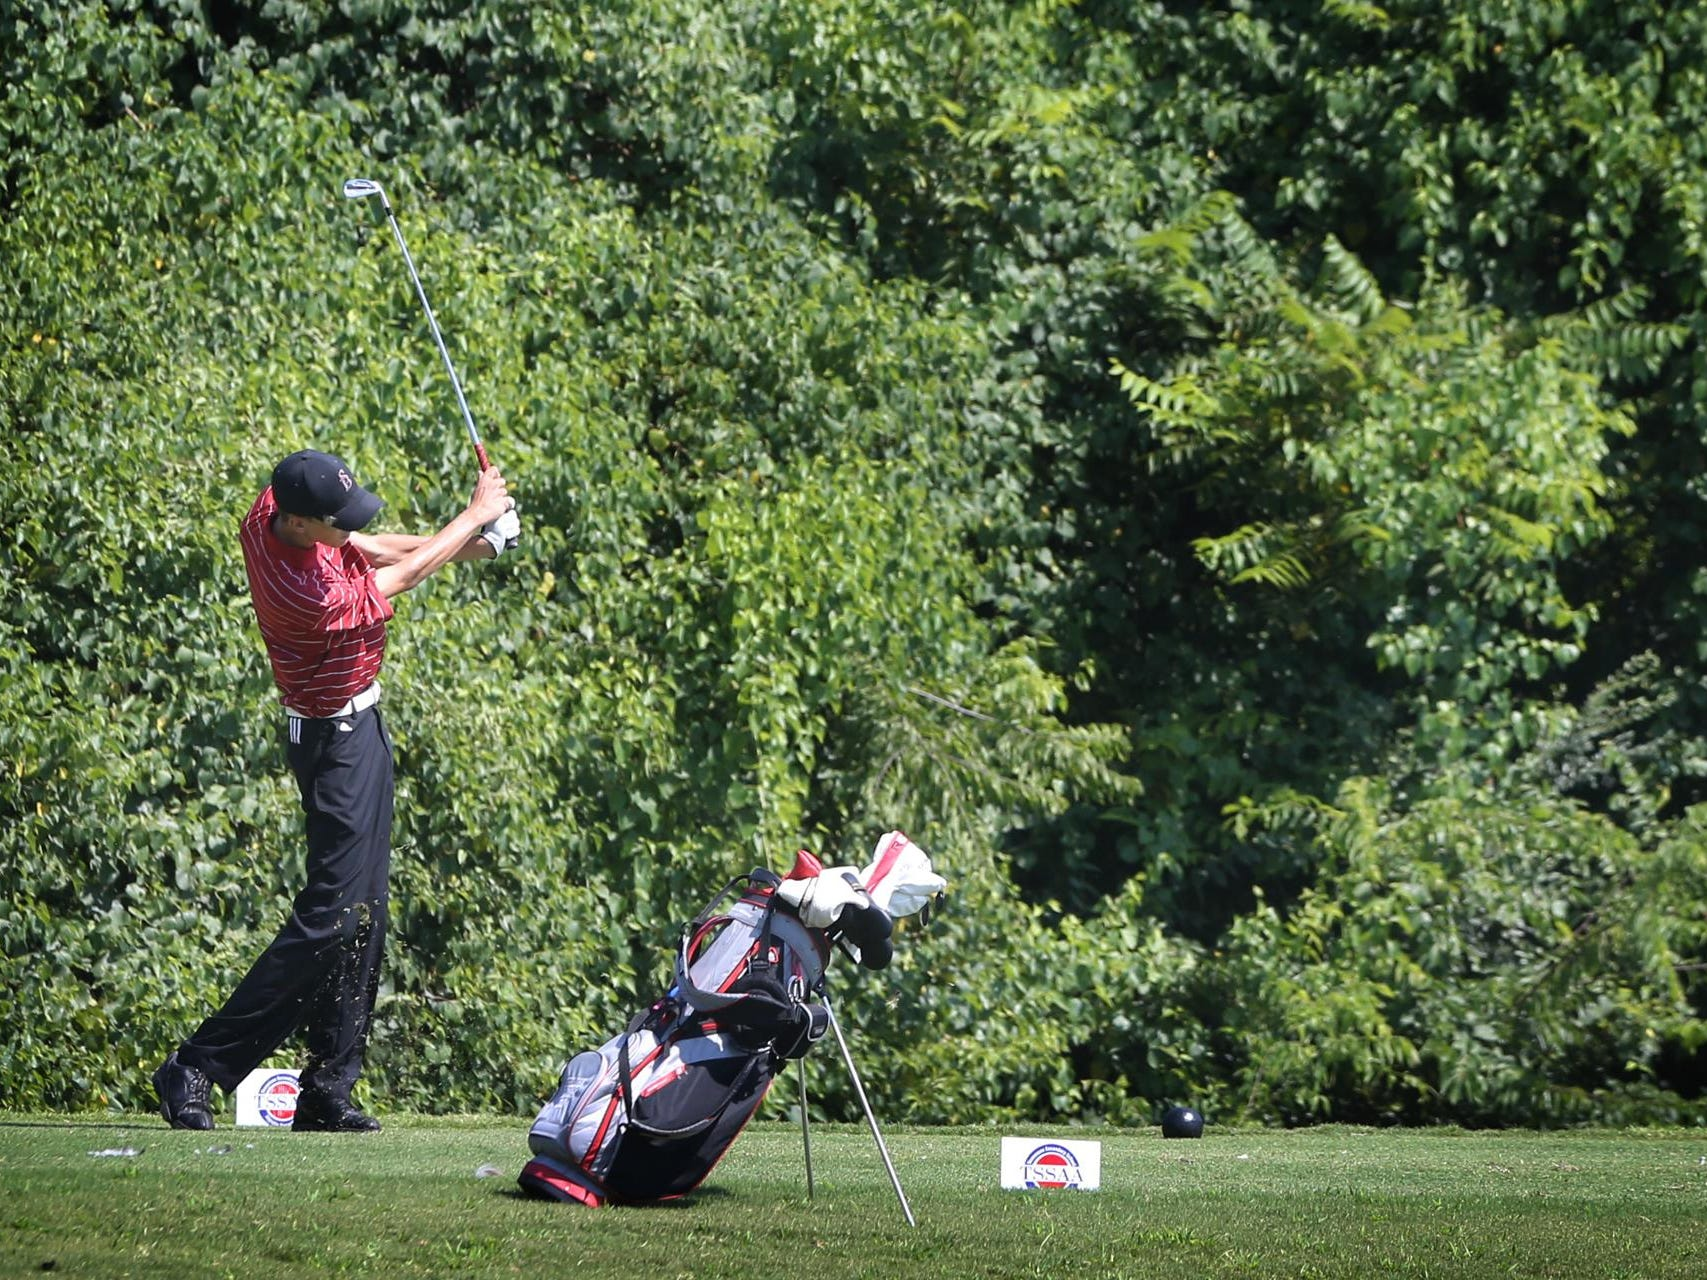 Stewarts Creek's Shelden Barina tees off during the Stones River Invitational on Monday.